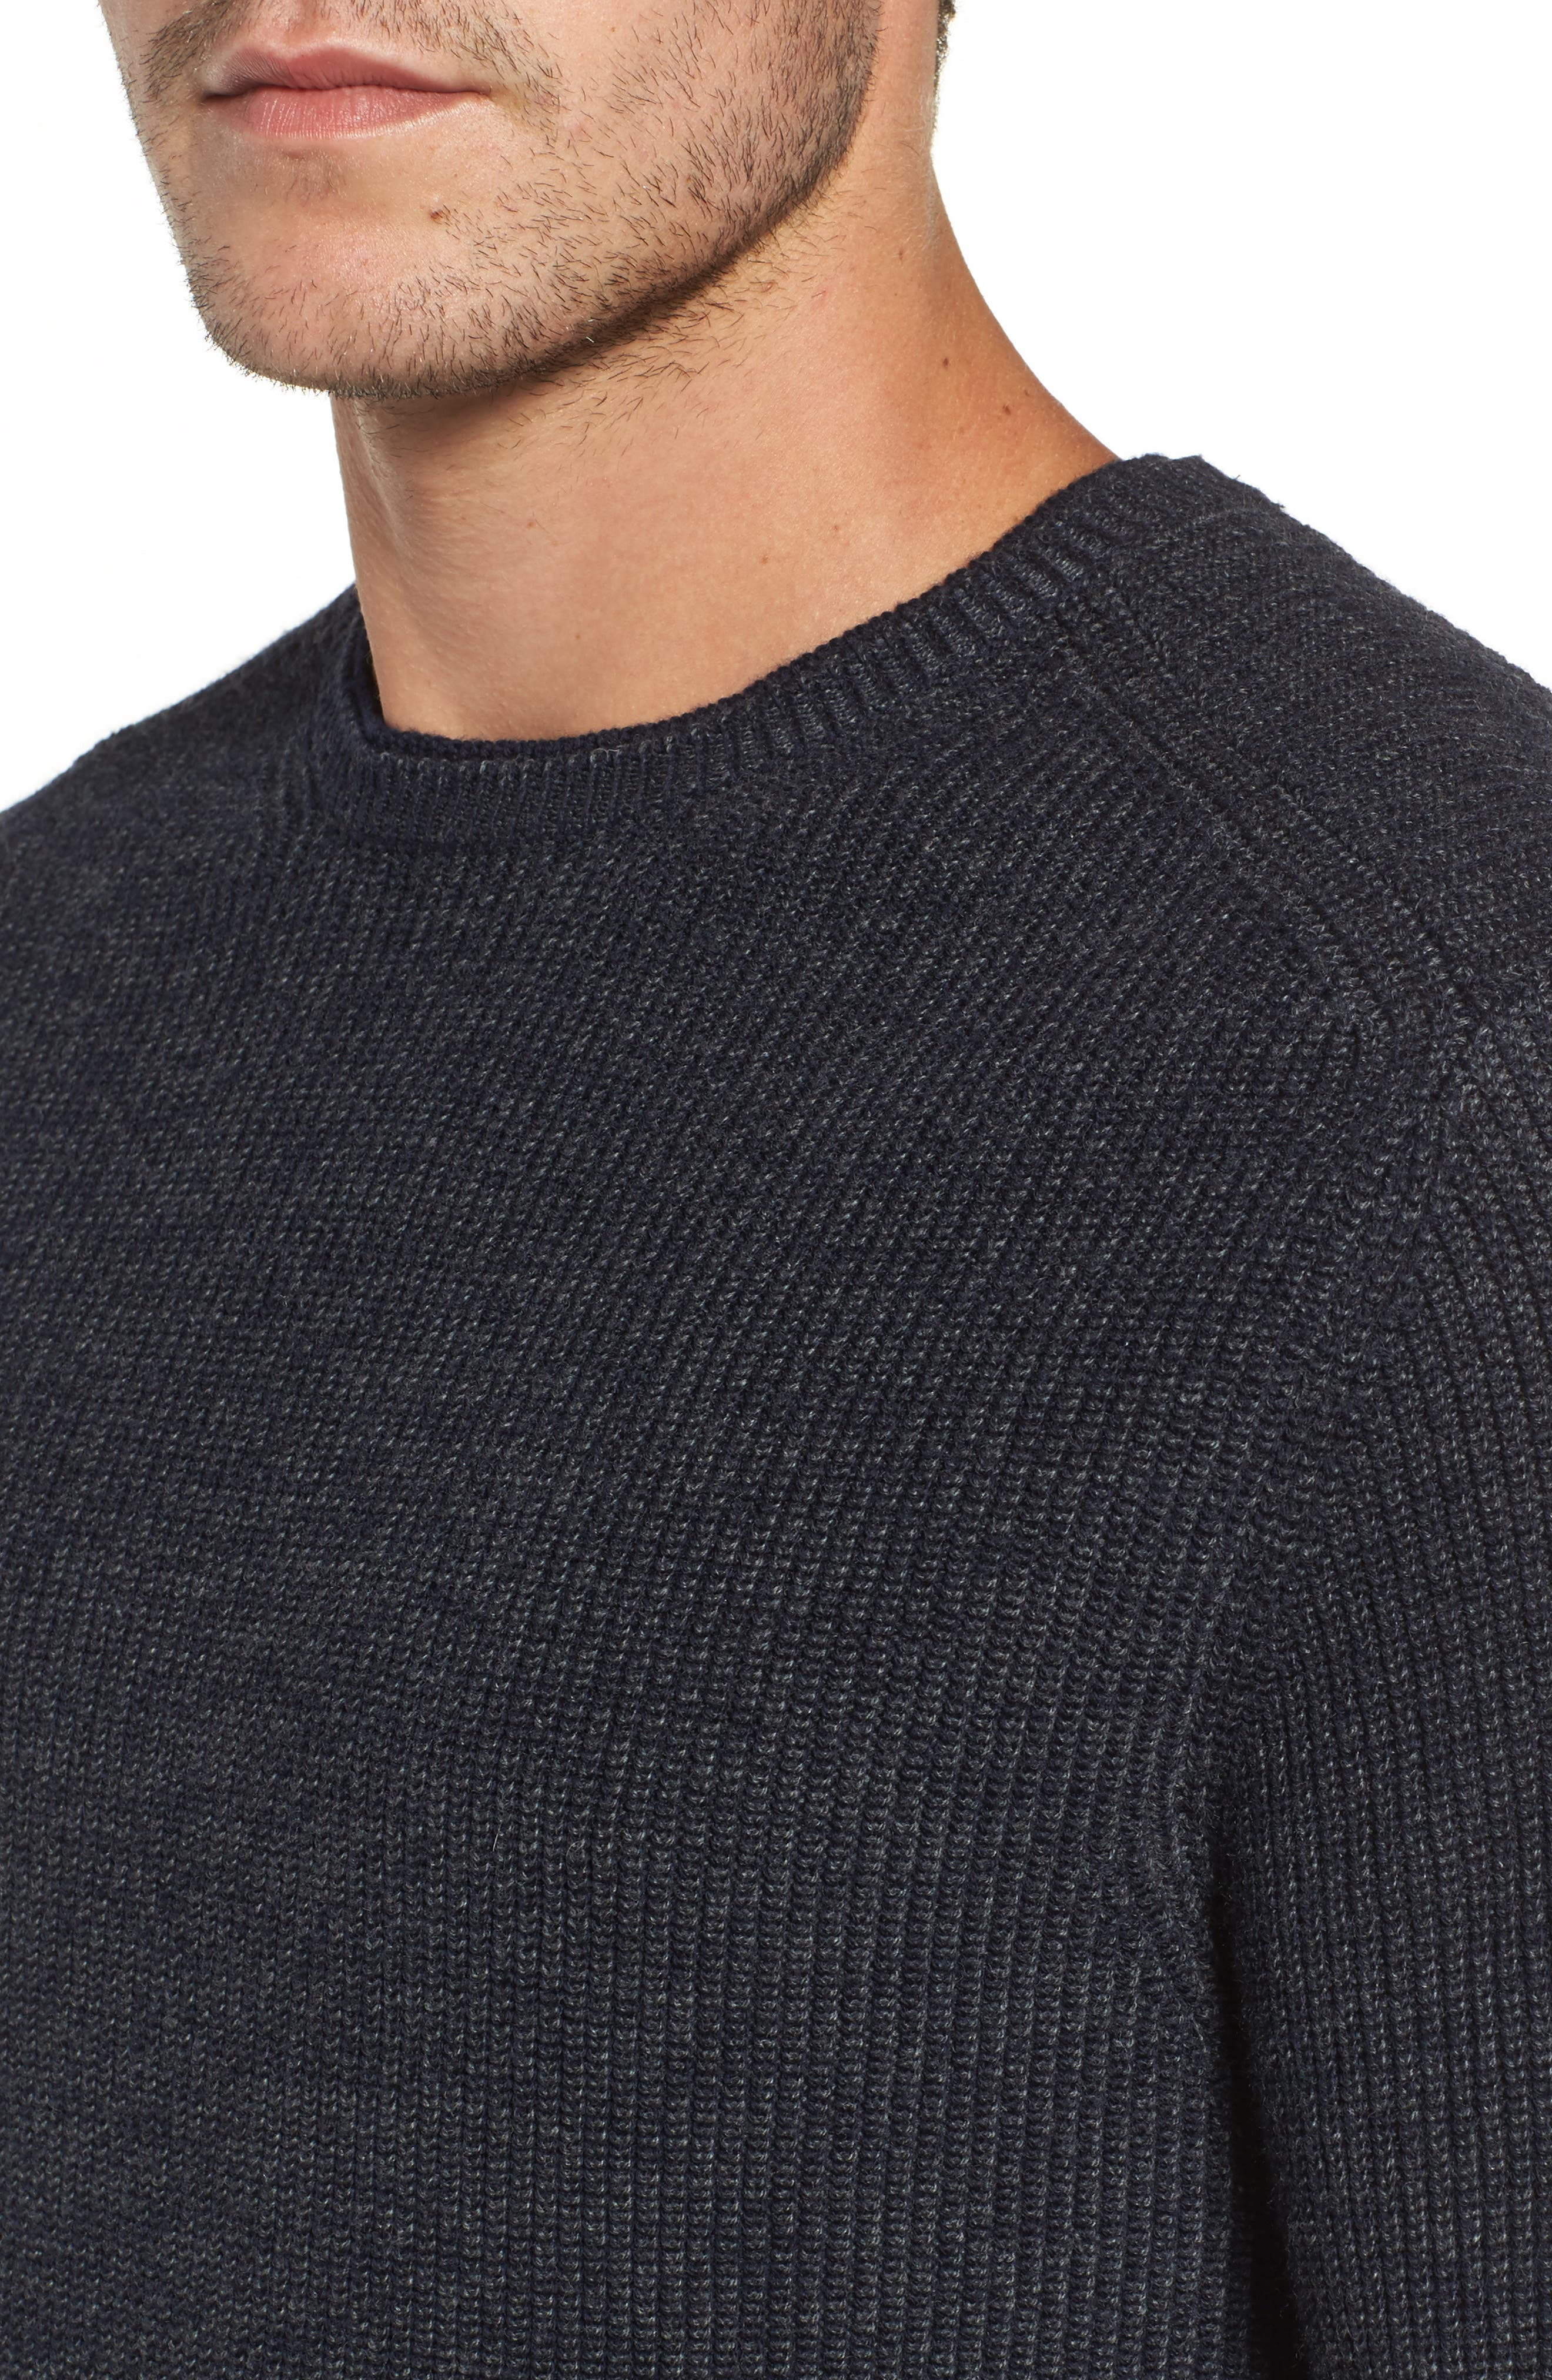 Whalers Bay Ribbed Merino Wool Sweater,                             Alternate thumbnail 4, color,                             Night